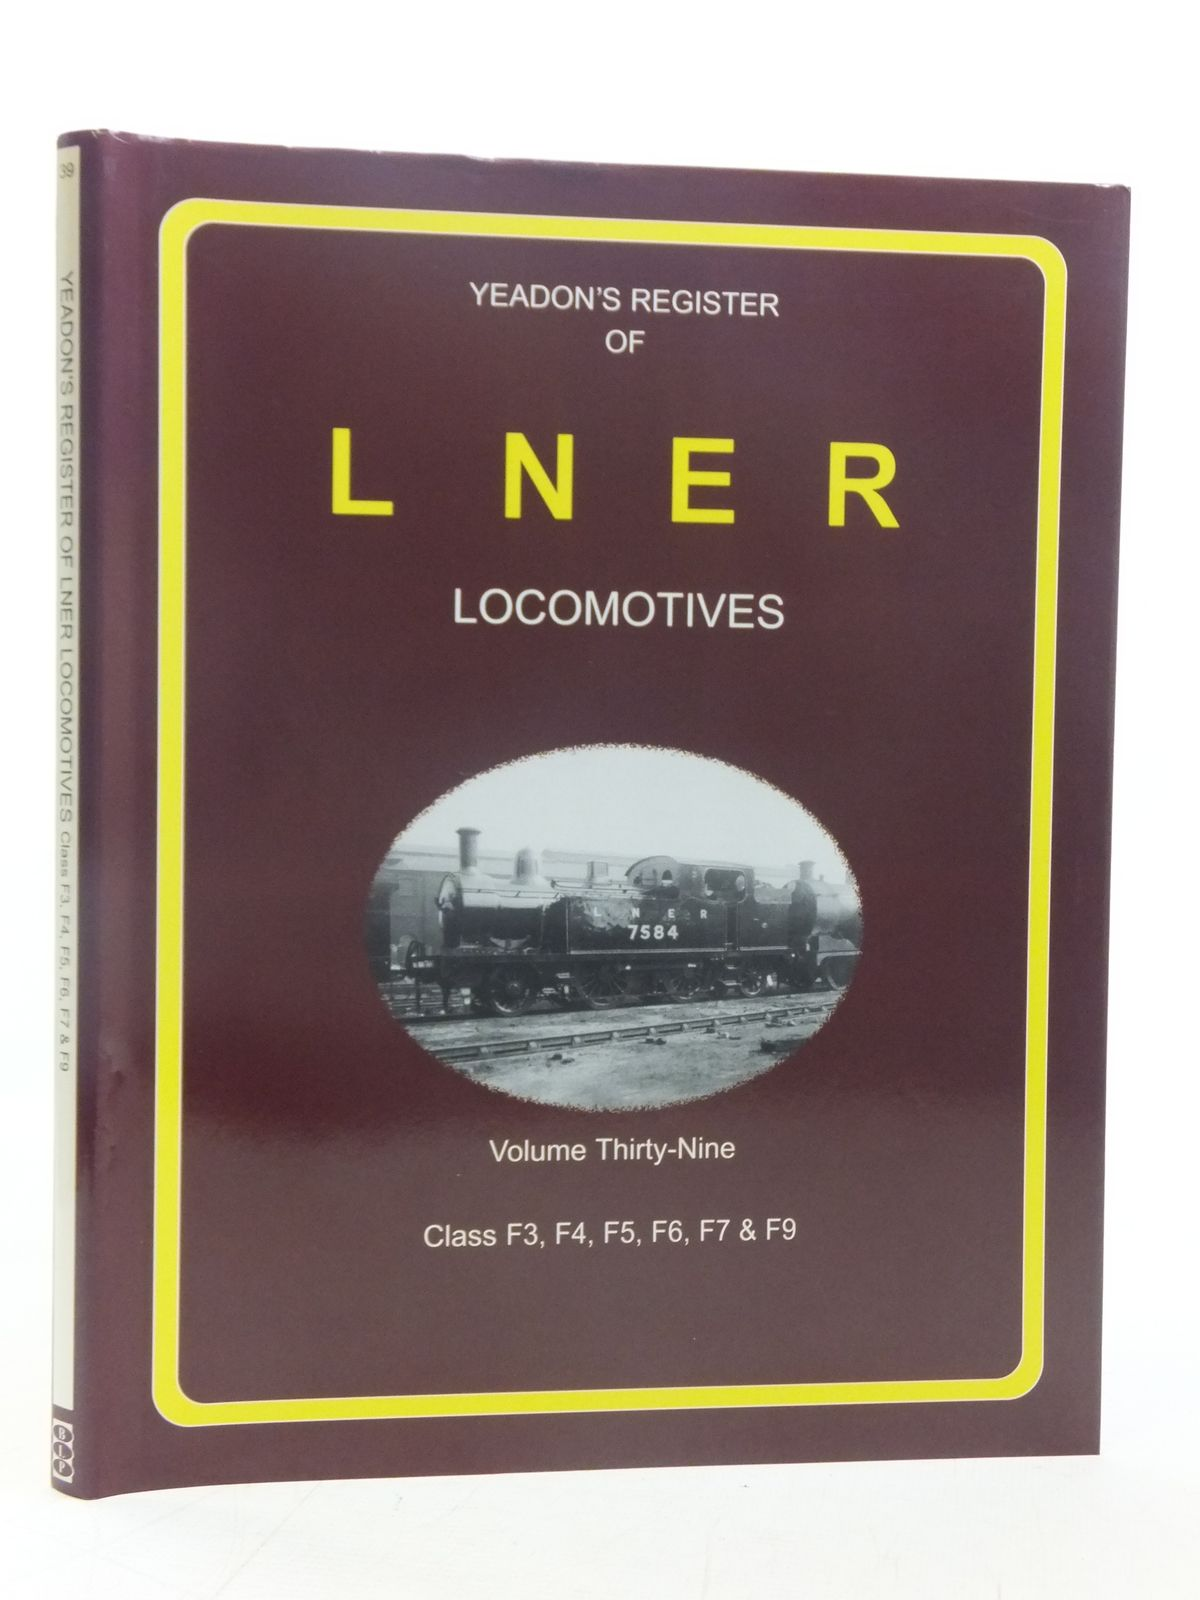 Photo of YEADON'S REGISTER OF LNER LOCOMOTIVES VOLUME THIRTY-NINE published by Challenger Publications, Book Law Publications (STOCK CODE: 1606909)  for sale by Stella & Rose's Books